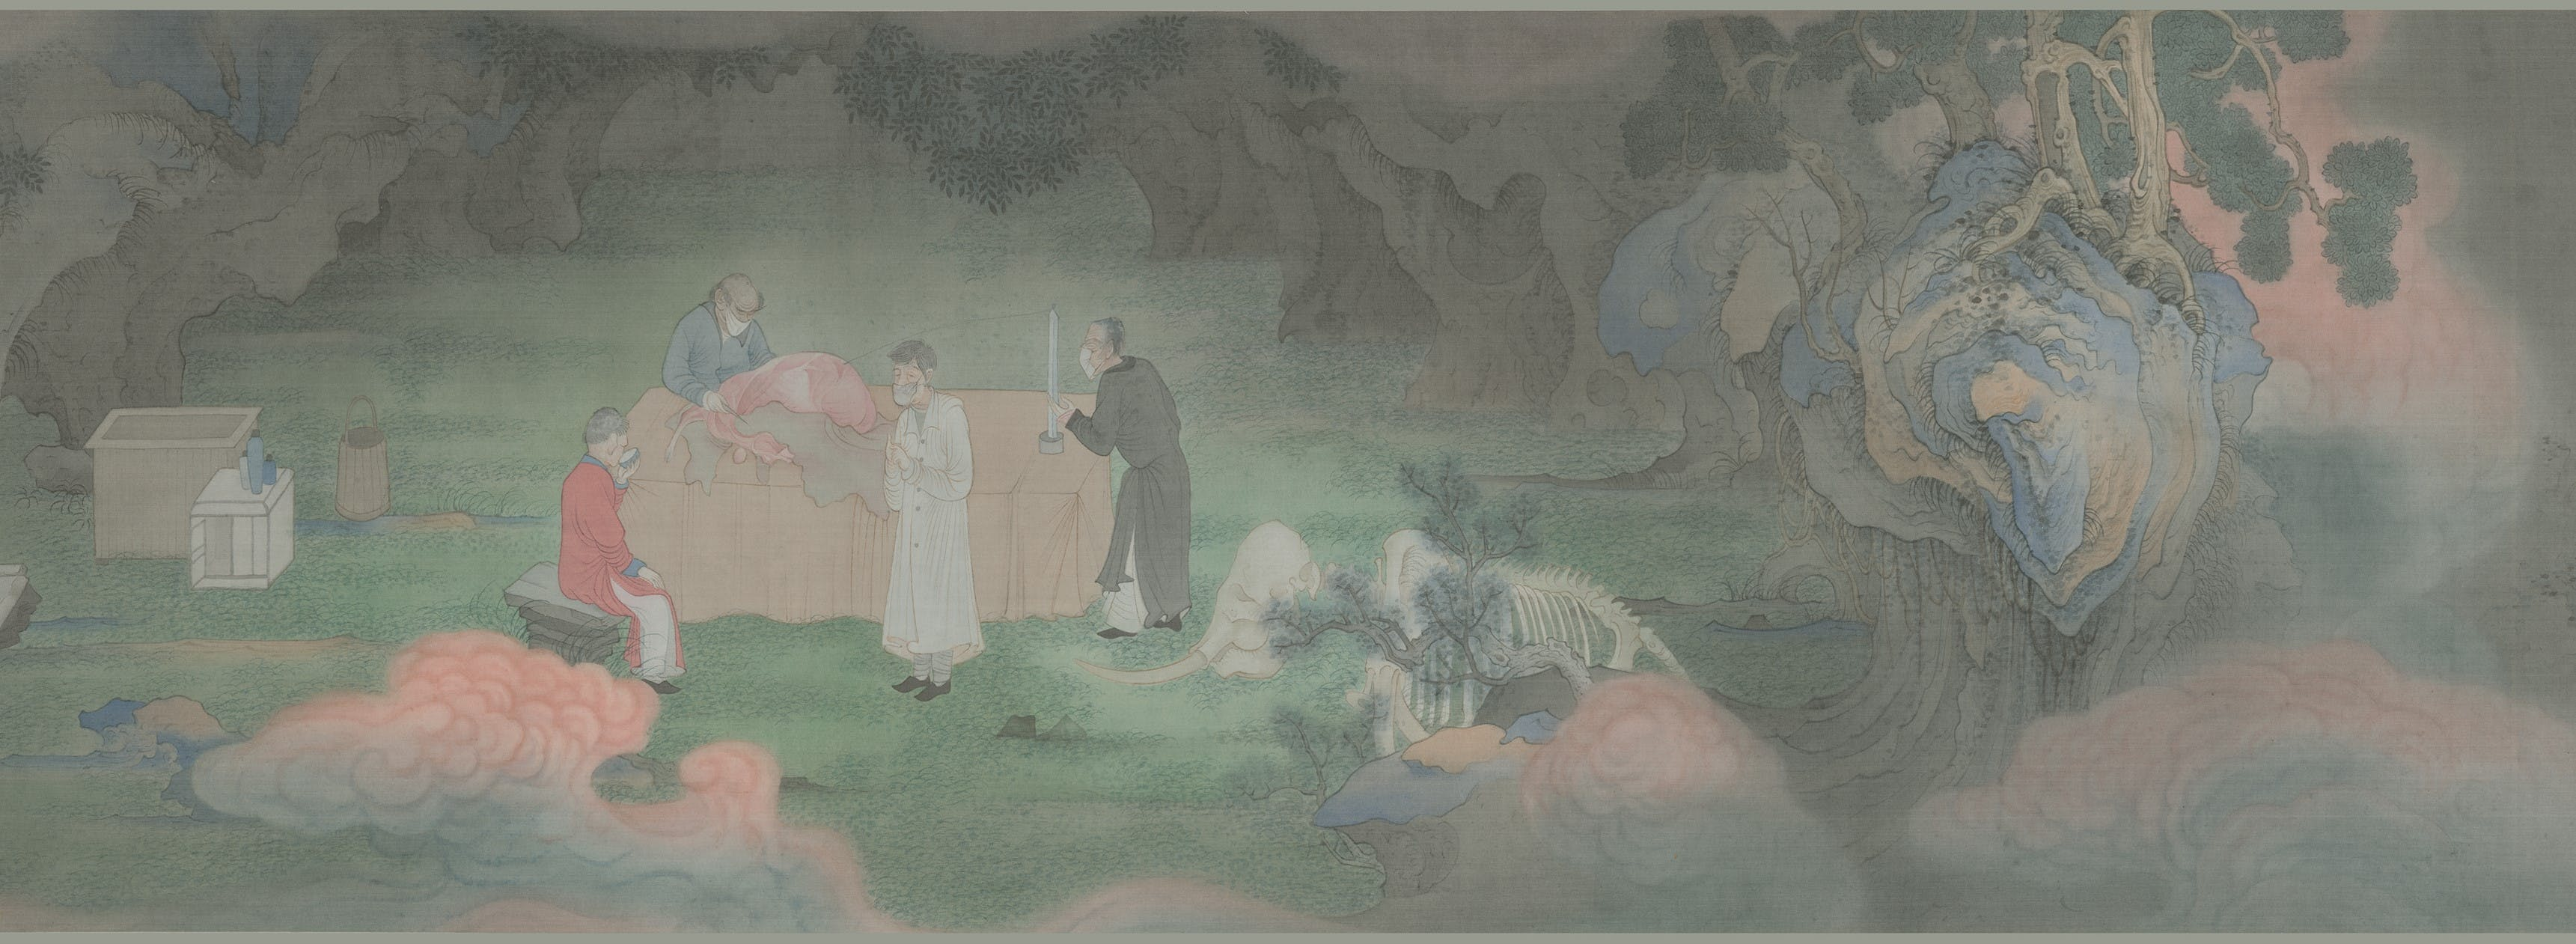 Hao Liang, The Tale of Clouds, 2013 (detail). Ink and colour on silk, 42 × 1,000 cm.